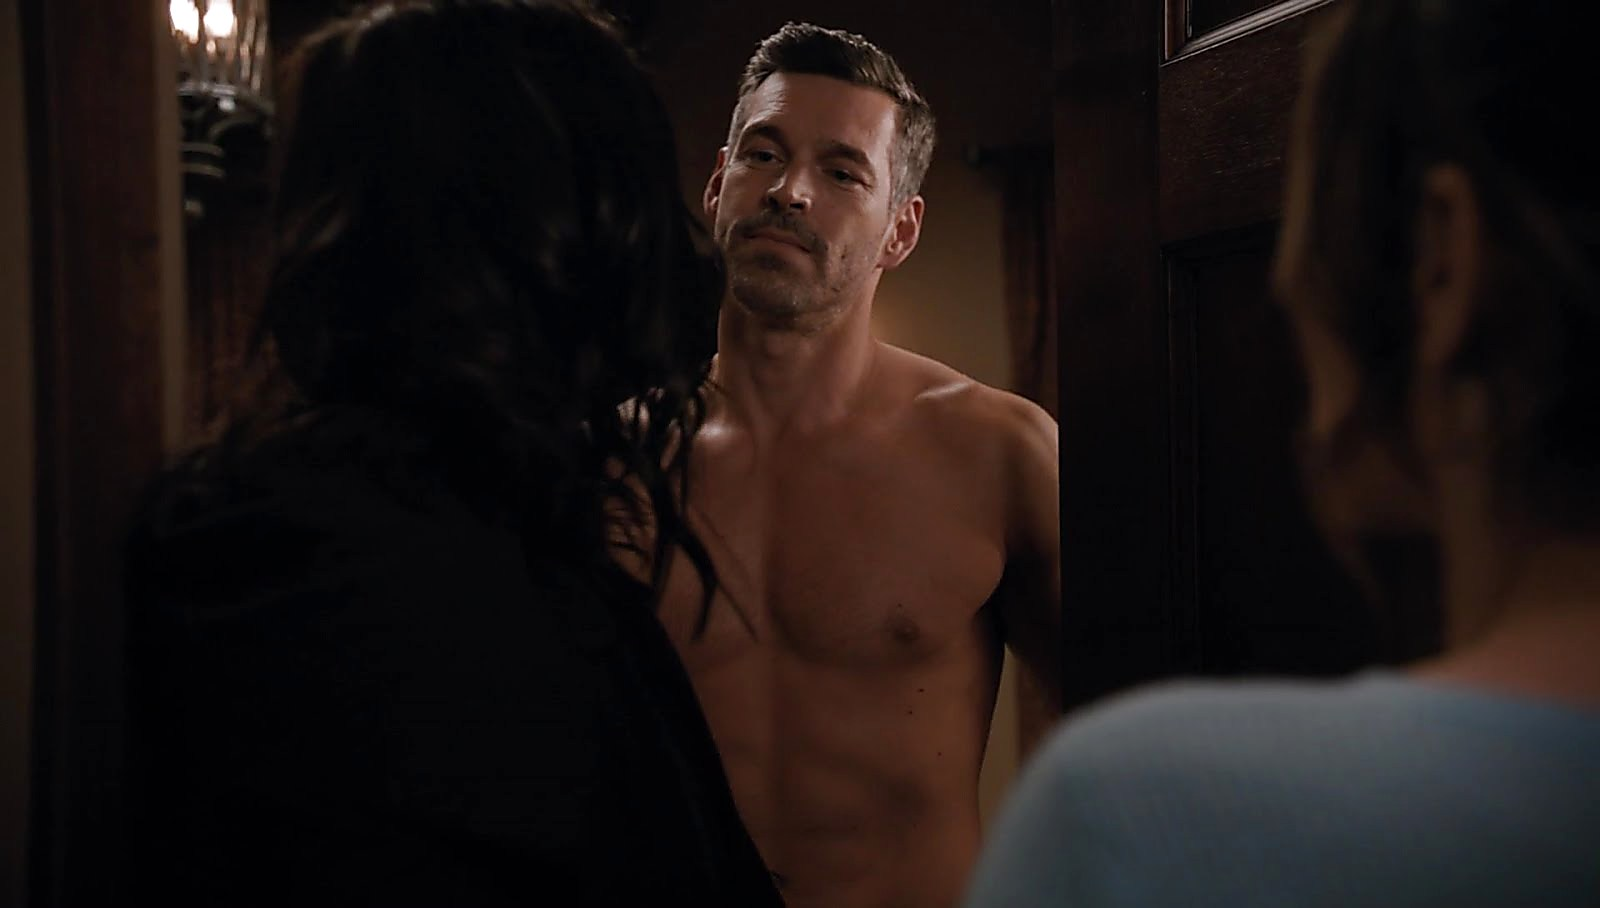 Eddie Cibrian sexy shirtless scene June 22, 2018, 11am